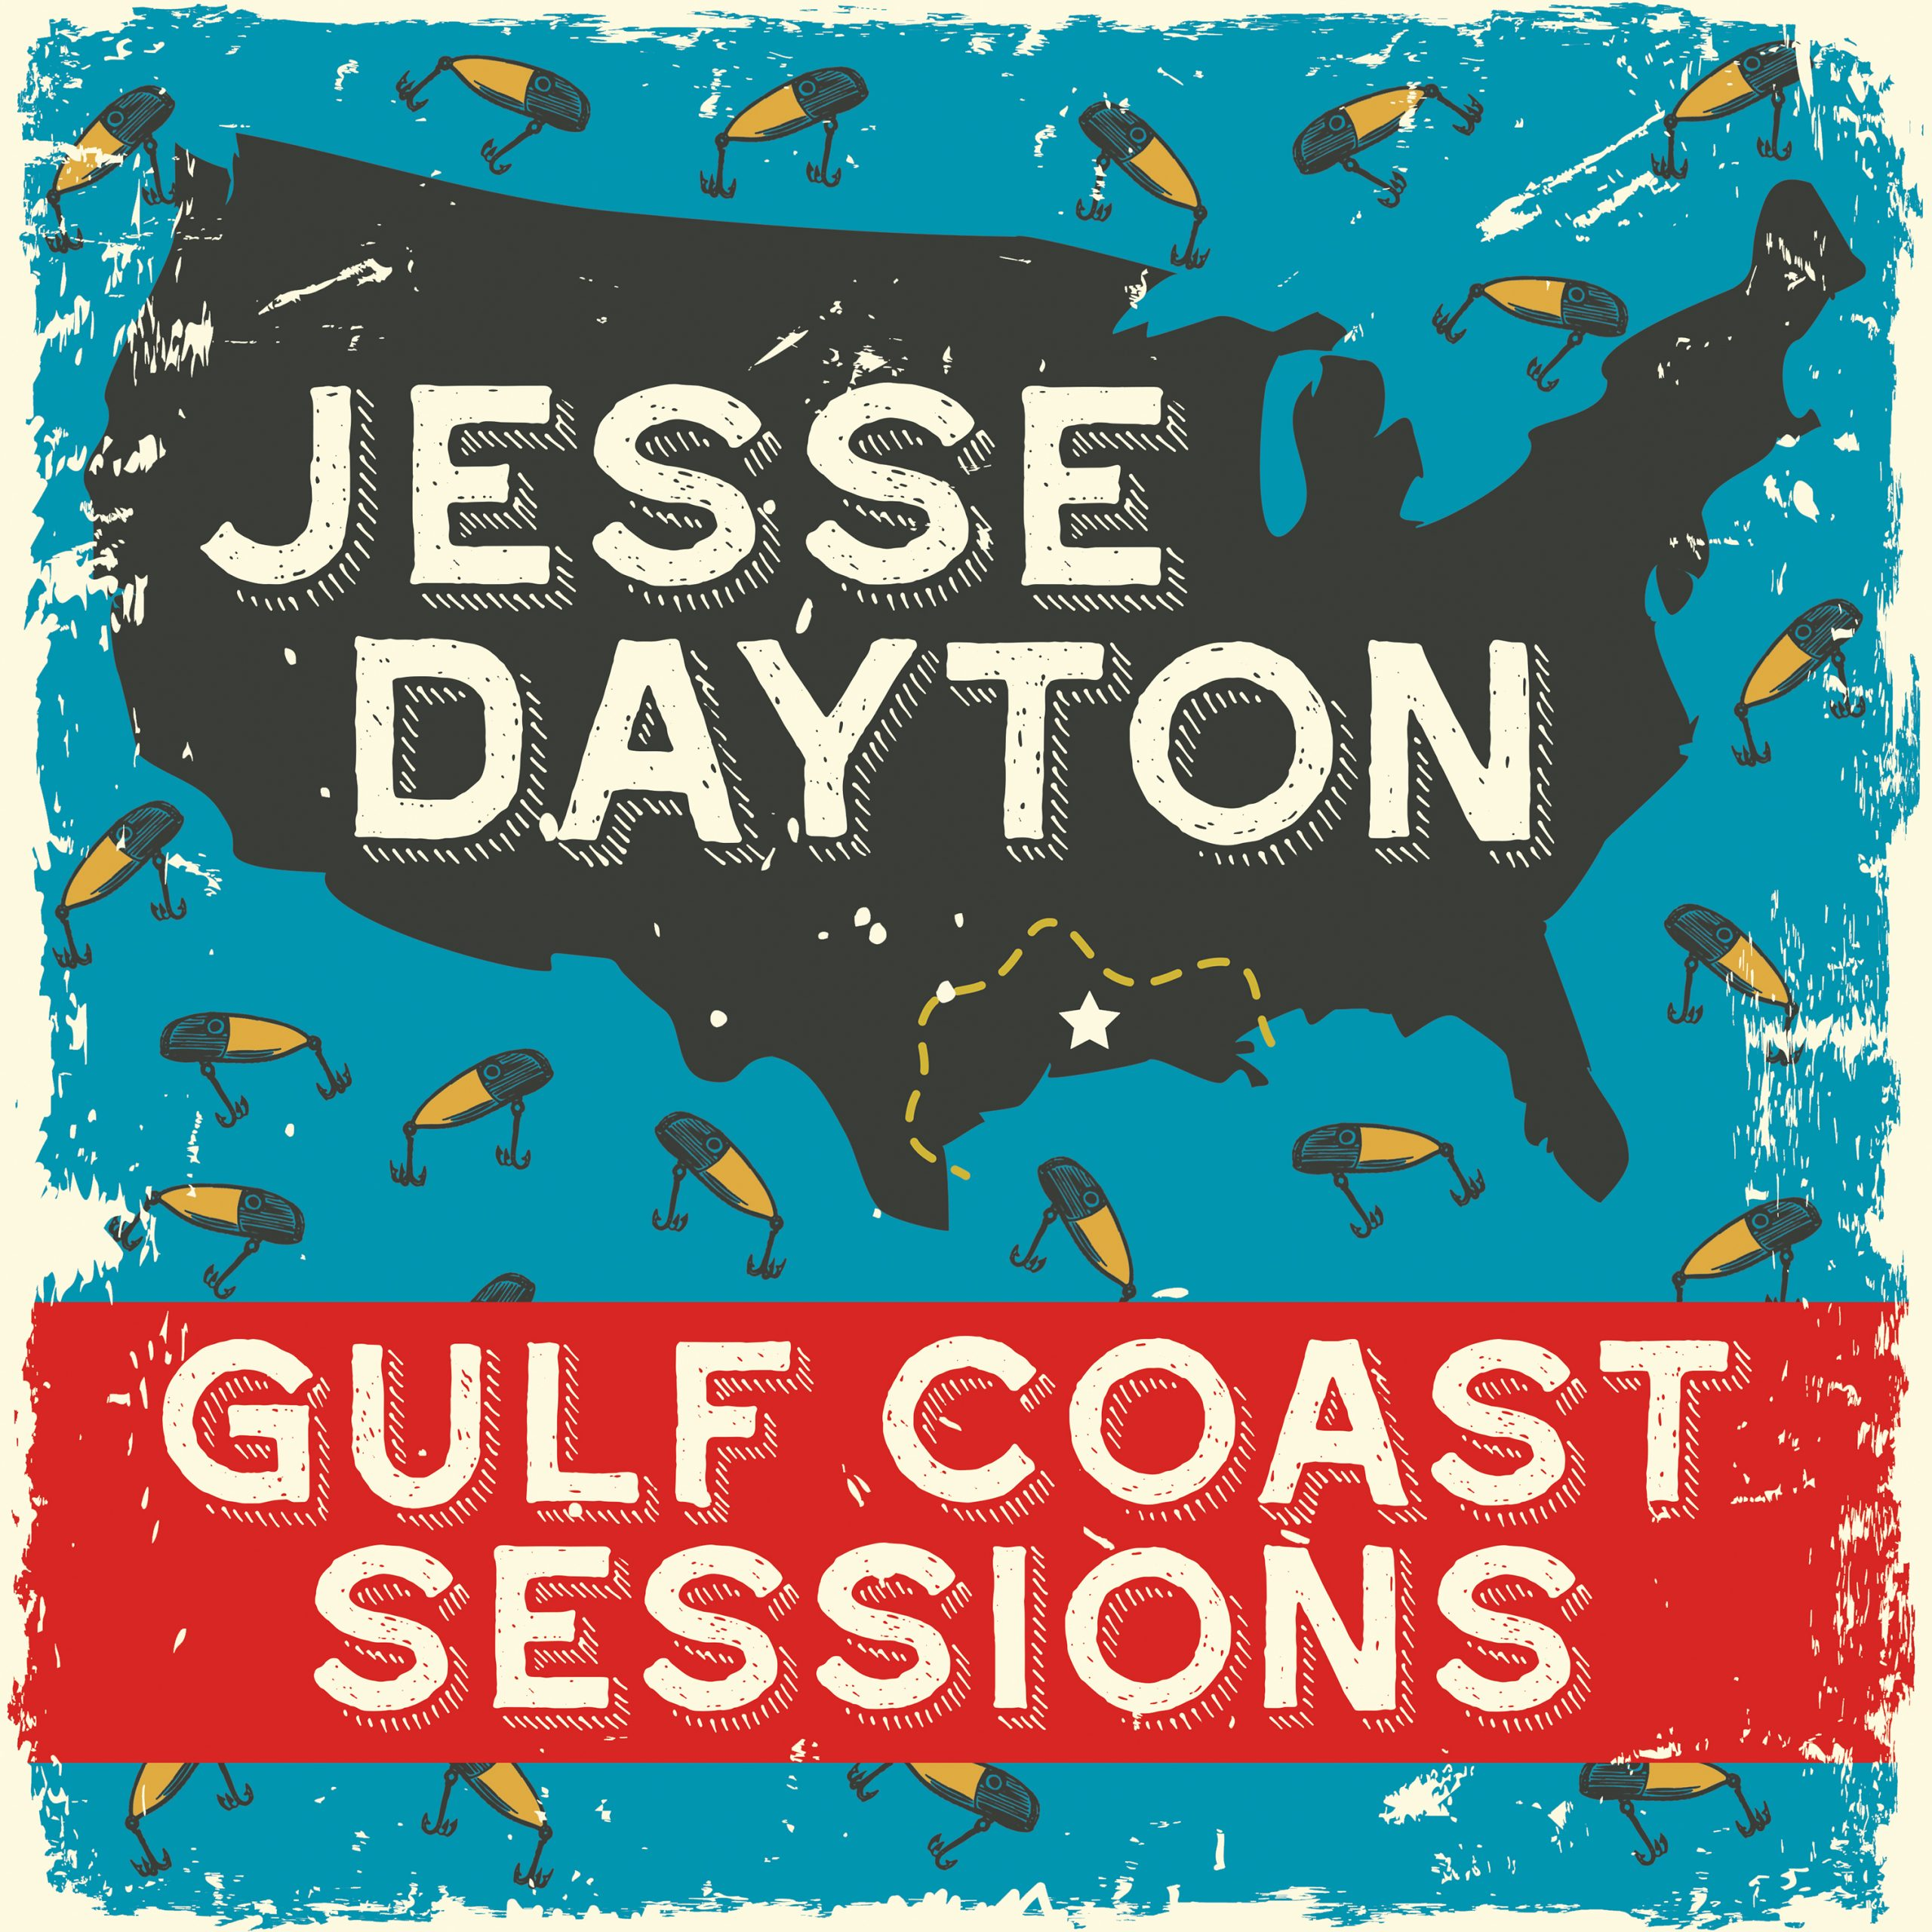 Jesse Dayton Gulf Coast Sessions EP out soon, get a free download Carencro Girl now by signing up for his email list.